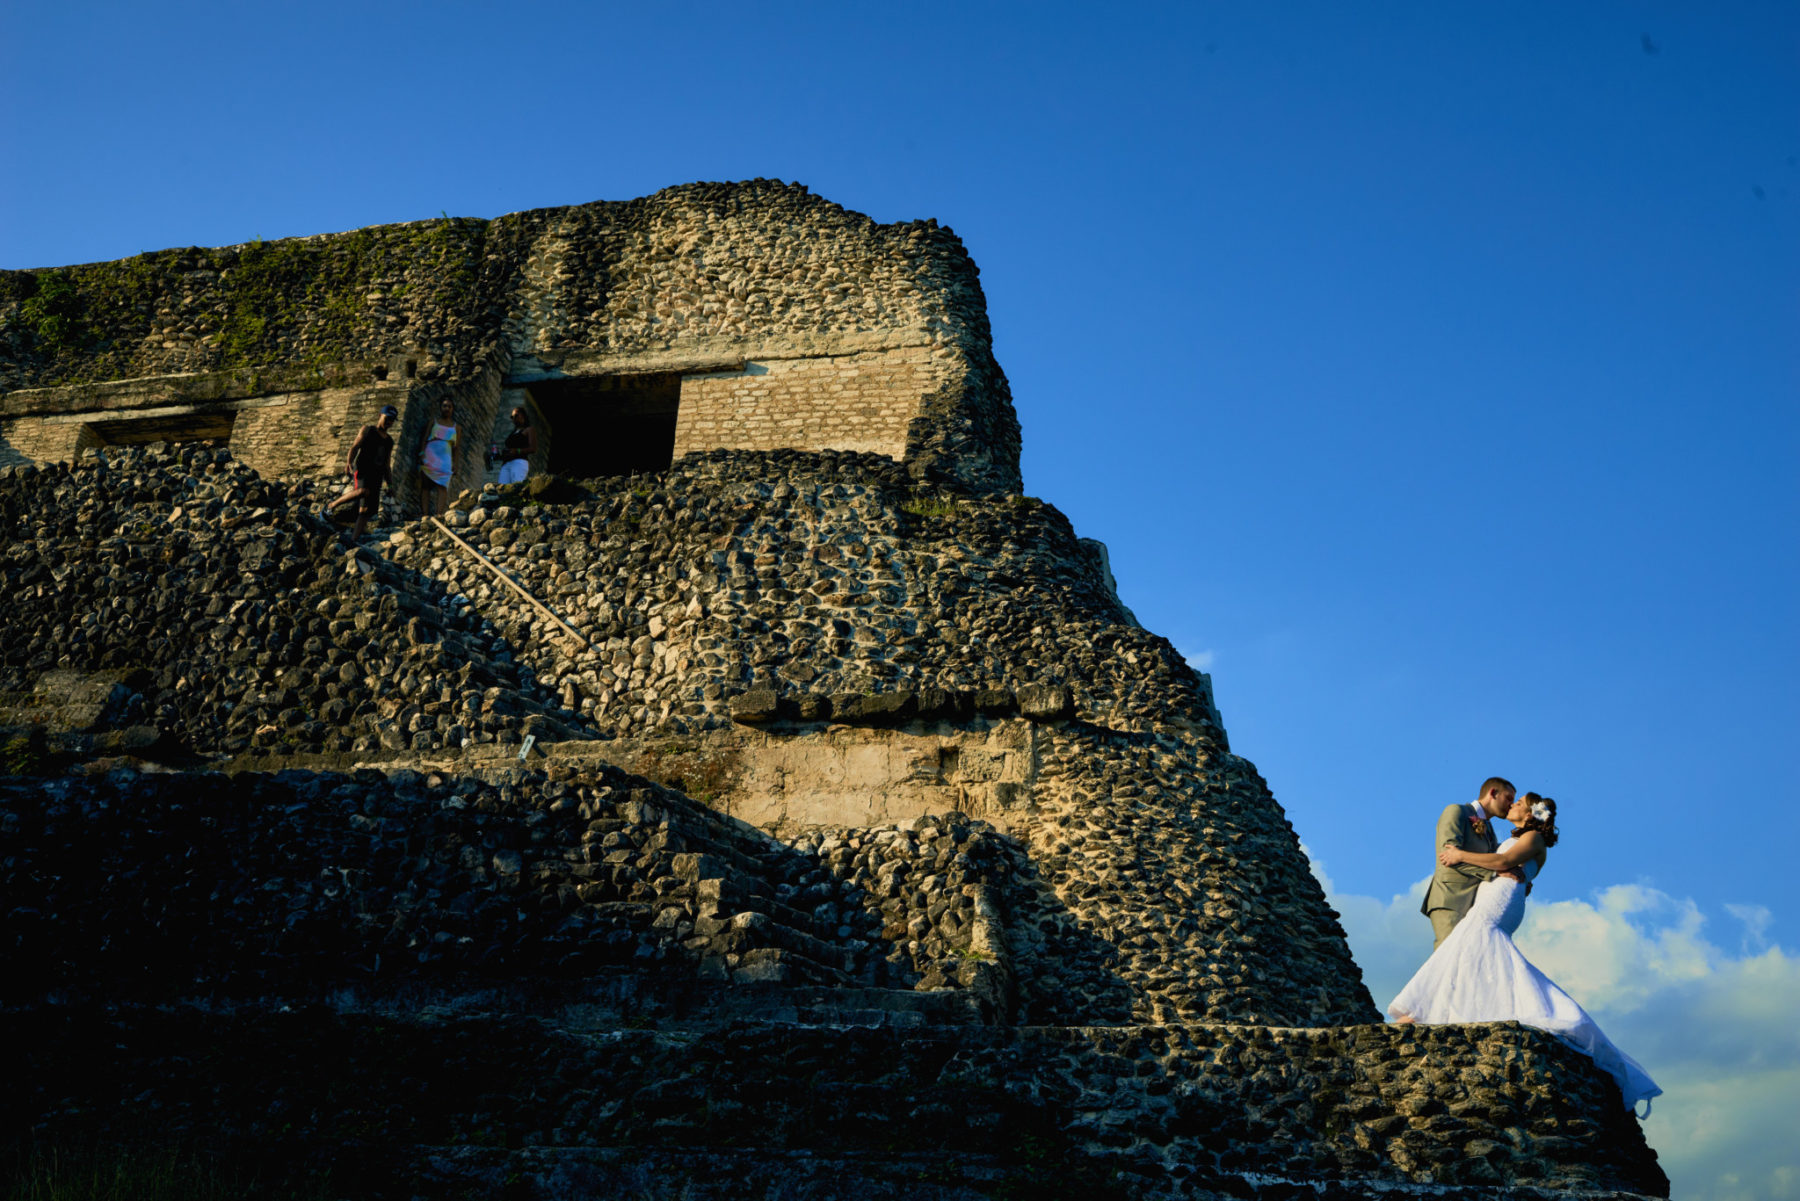 Bride and Groom at Xunantunich Mayan Ruin, Belize